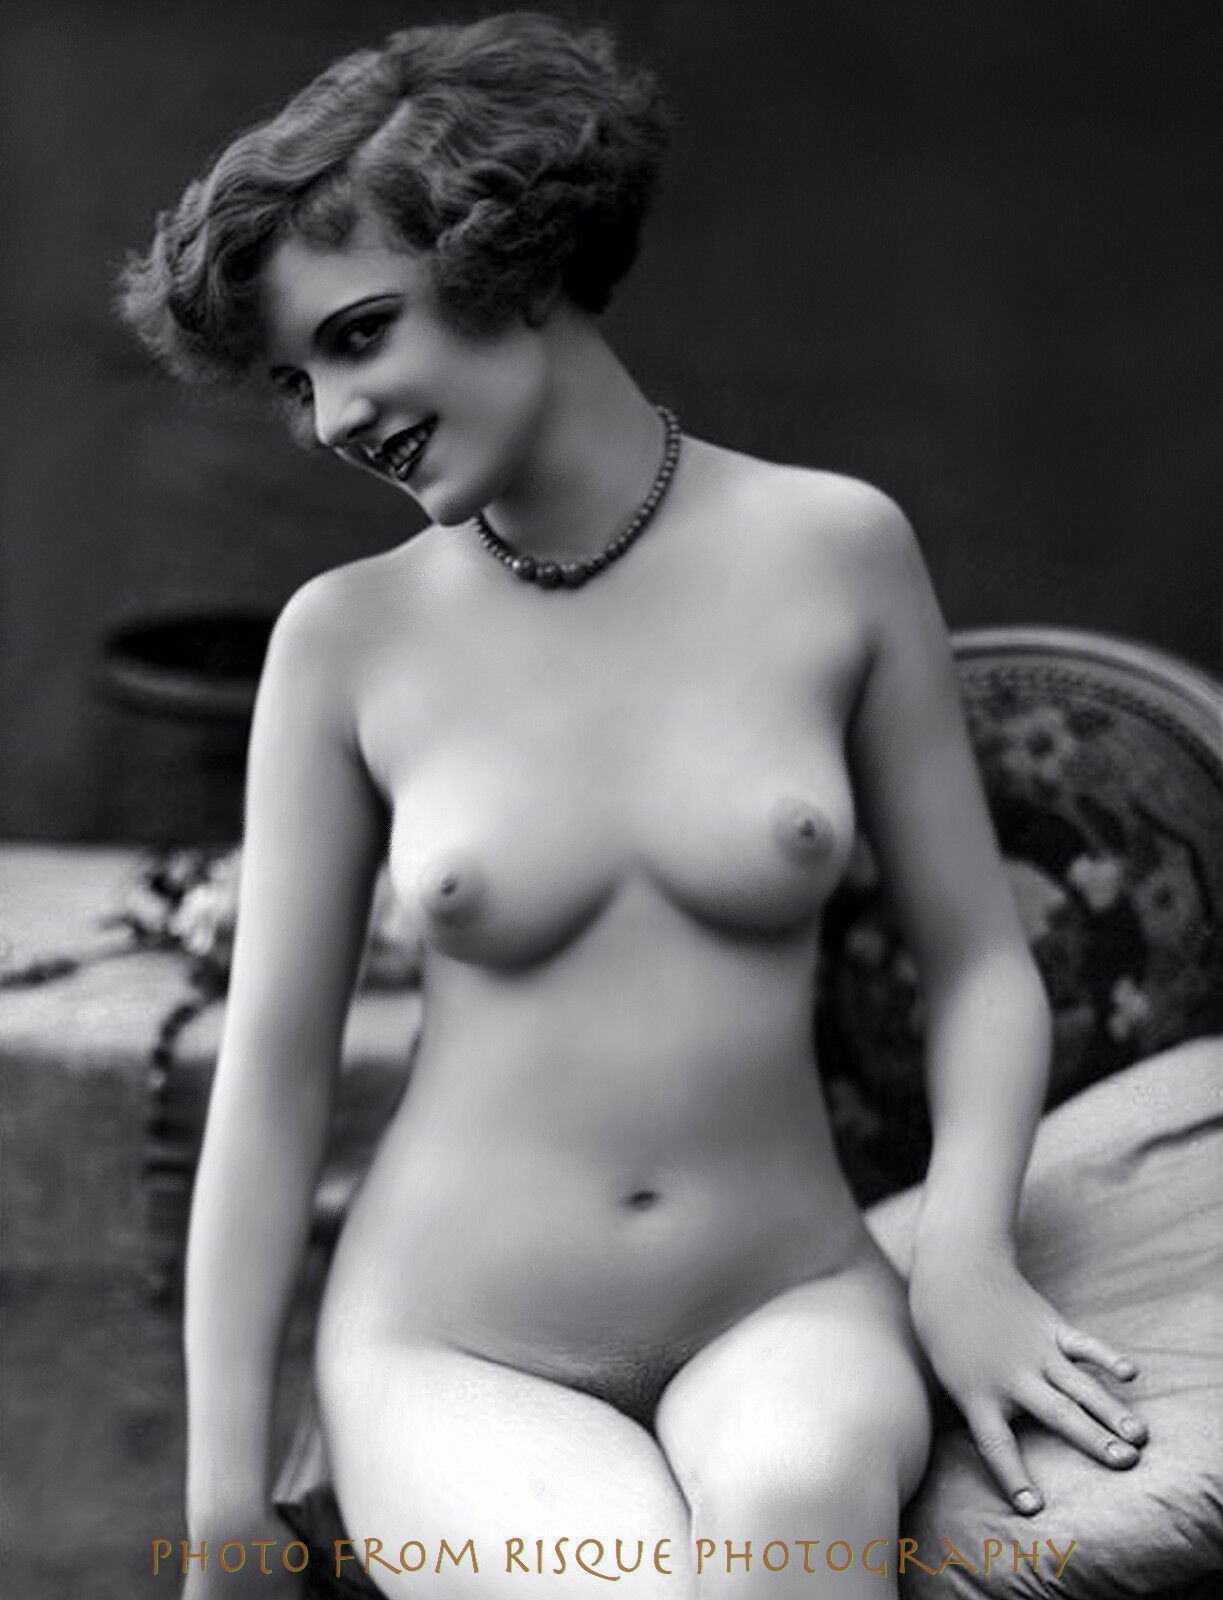 Vintage nudes pictures, picture hugh hewitt and wife